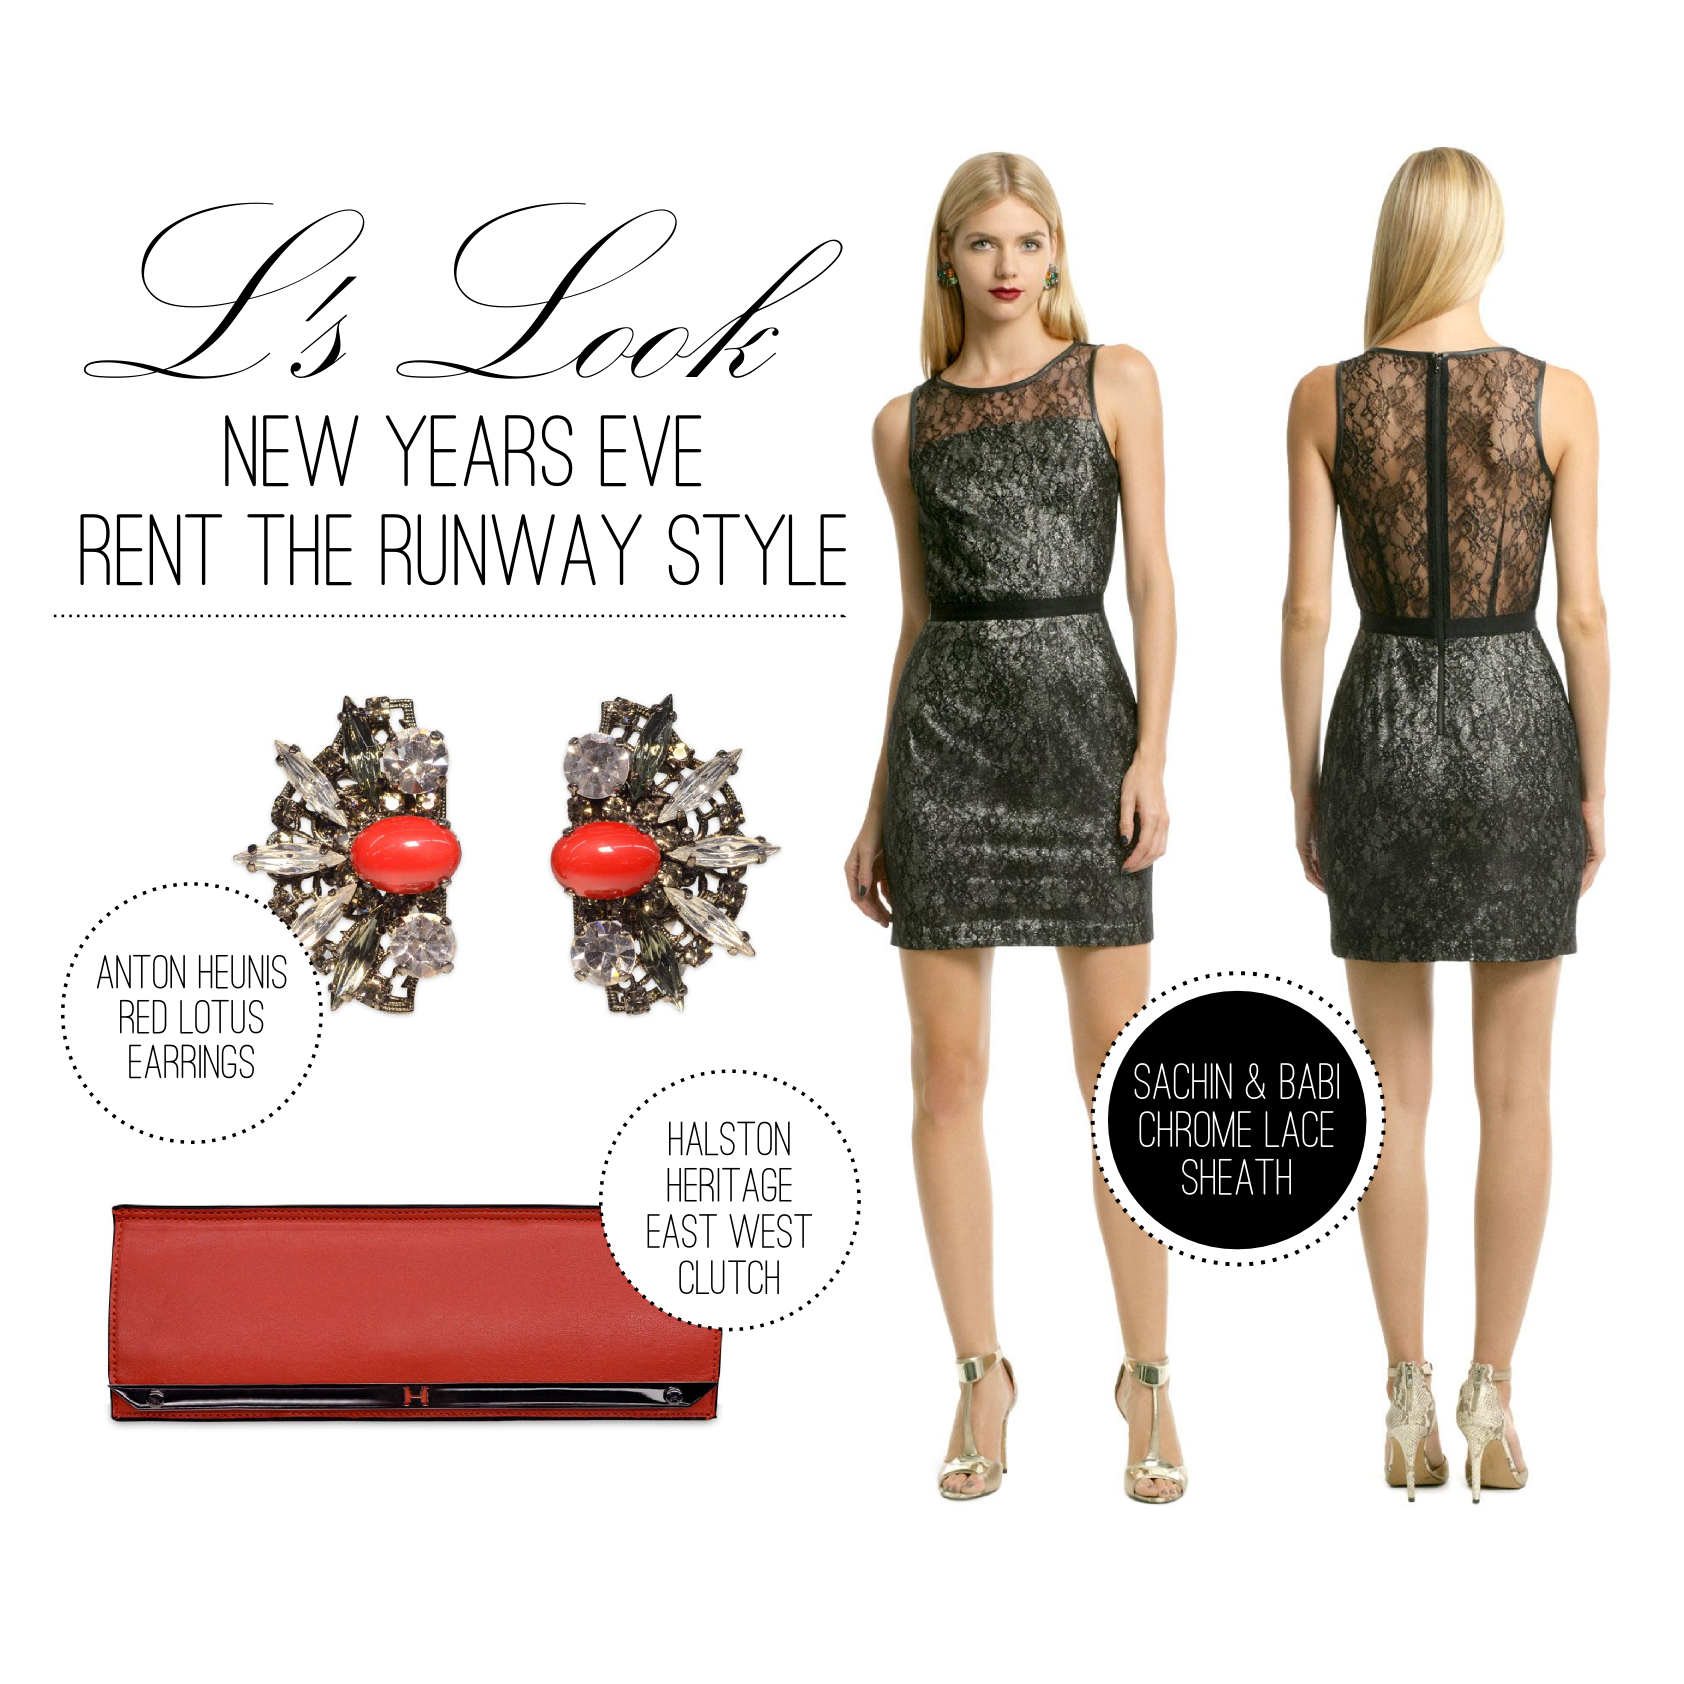 deux-chicago-rent-the-runway-laura